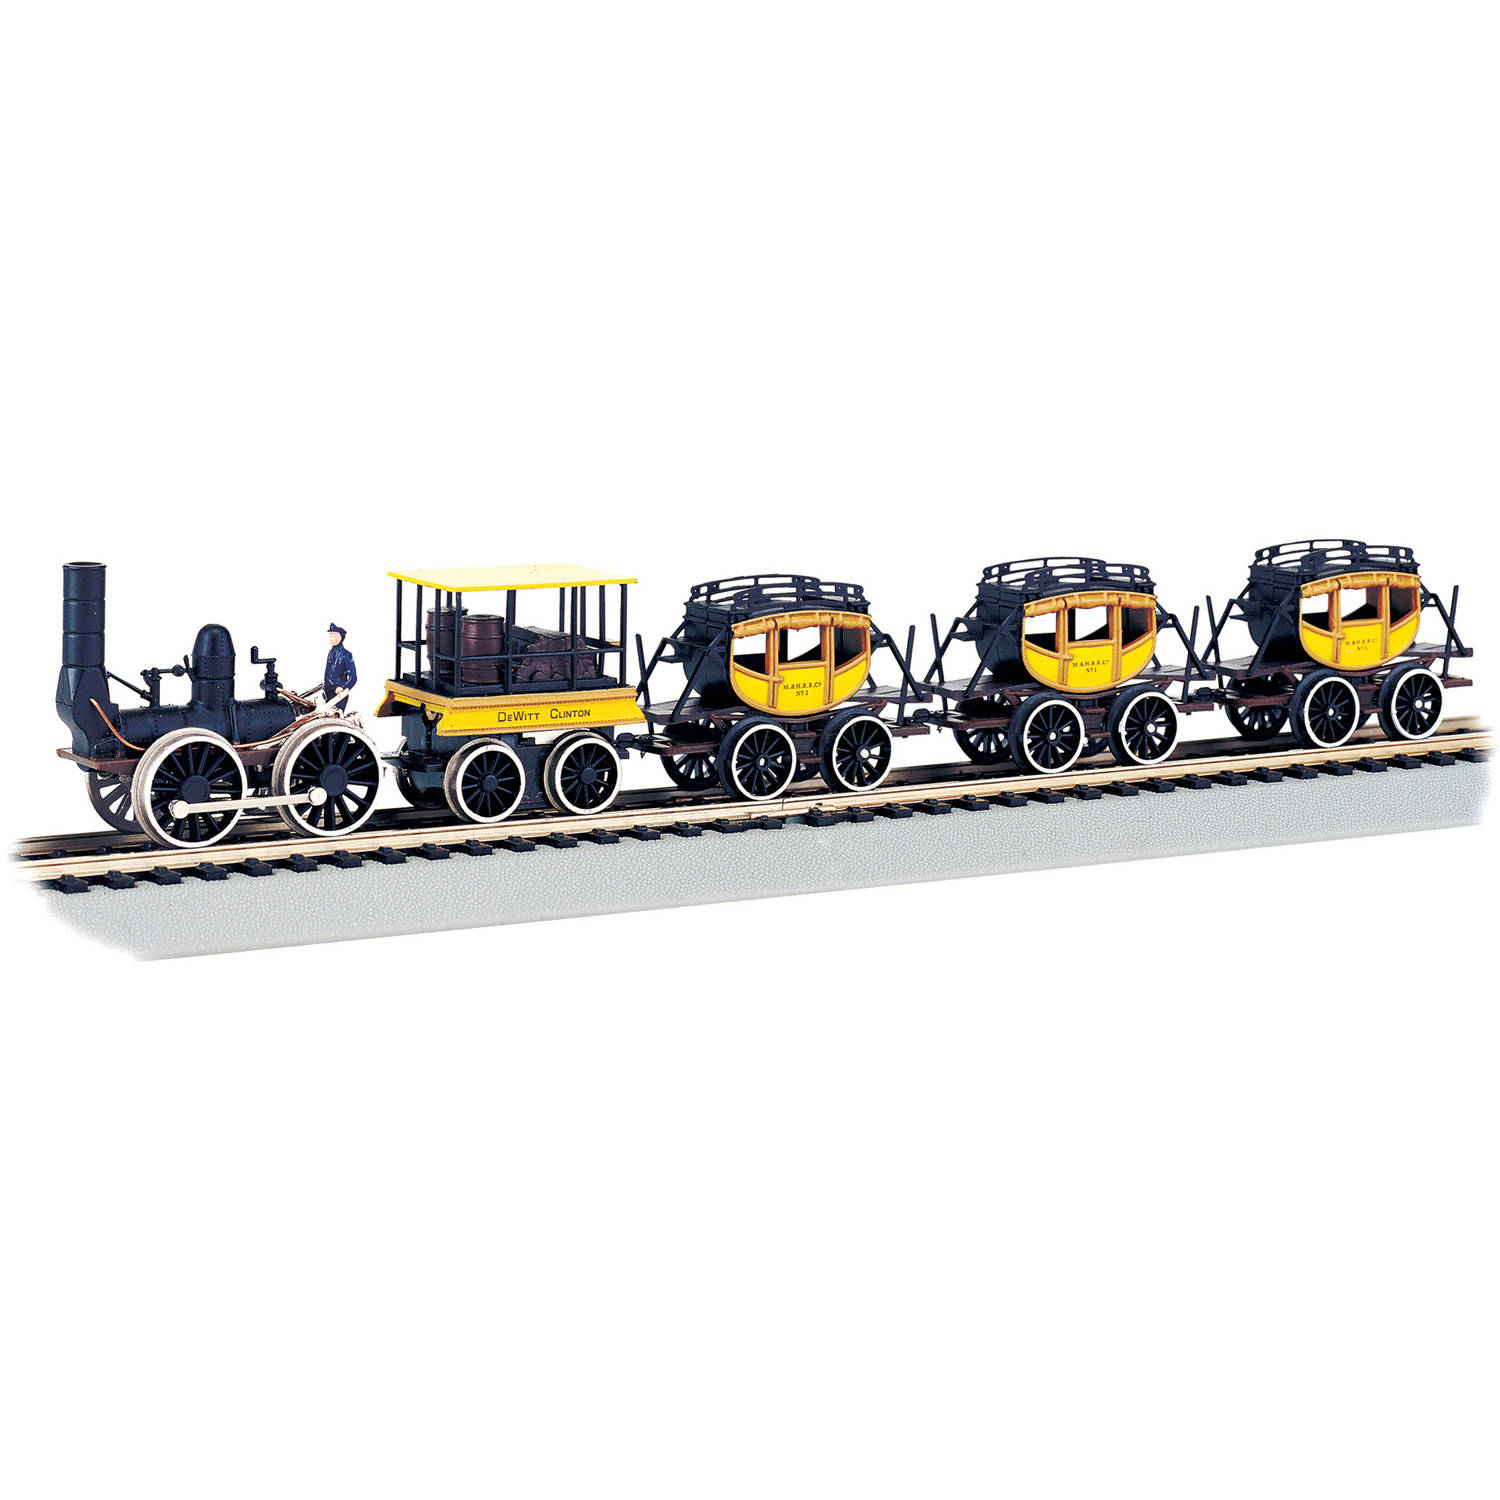 Bachmann Trains Dewitt Clinton HO Scale Ready-To-Run Electric Train Set by Bachmann Trains